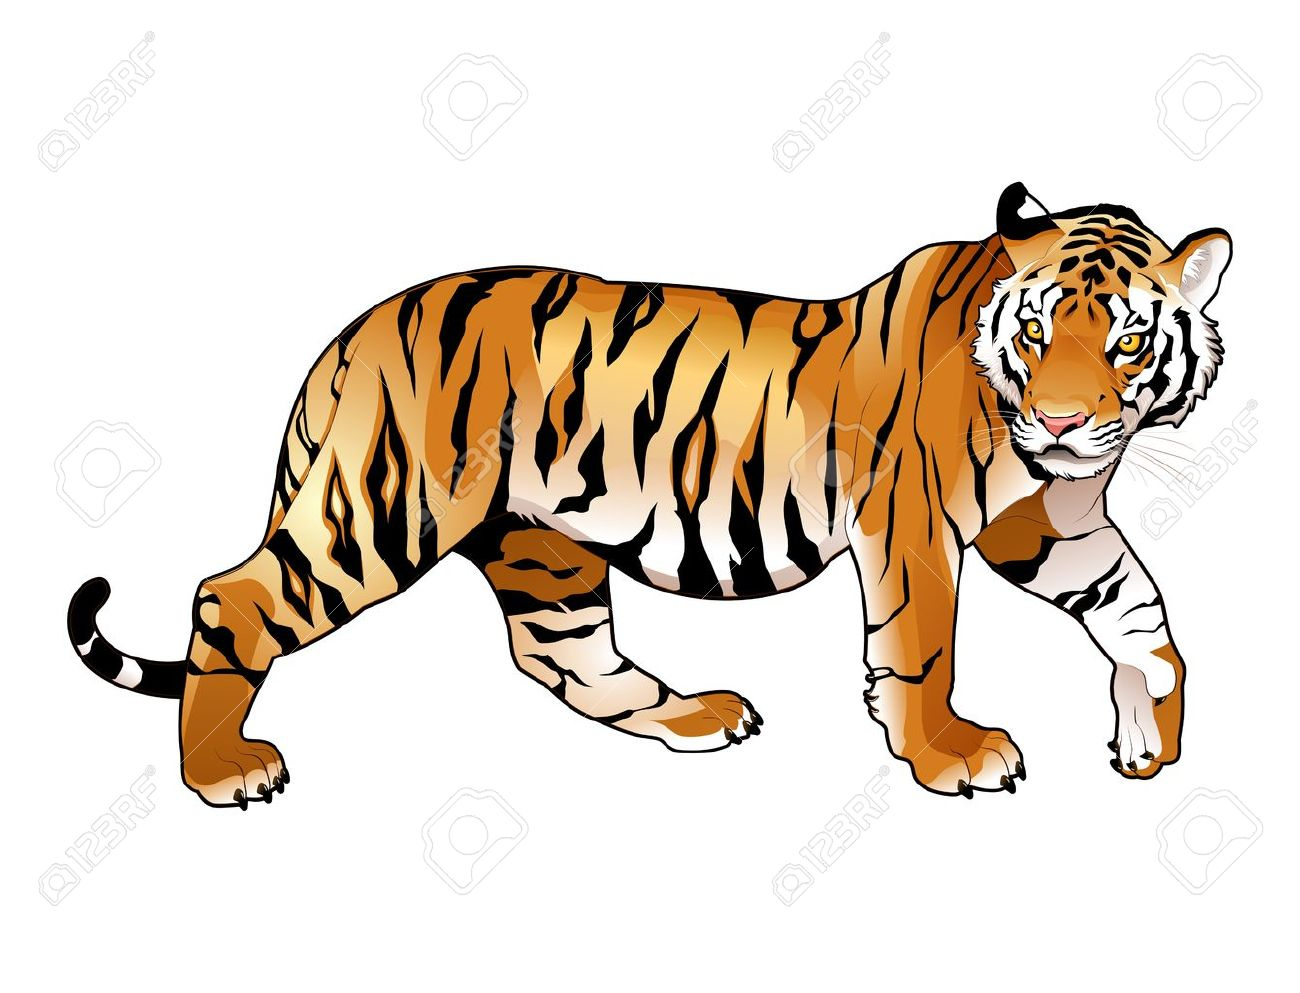 38 885 tiger stock vector illustration and royalty free tiger clipart rh 123rf com tiger clip art black and white tiger clipart pictures